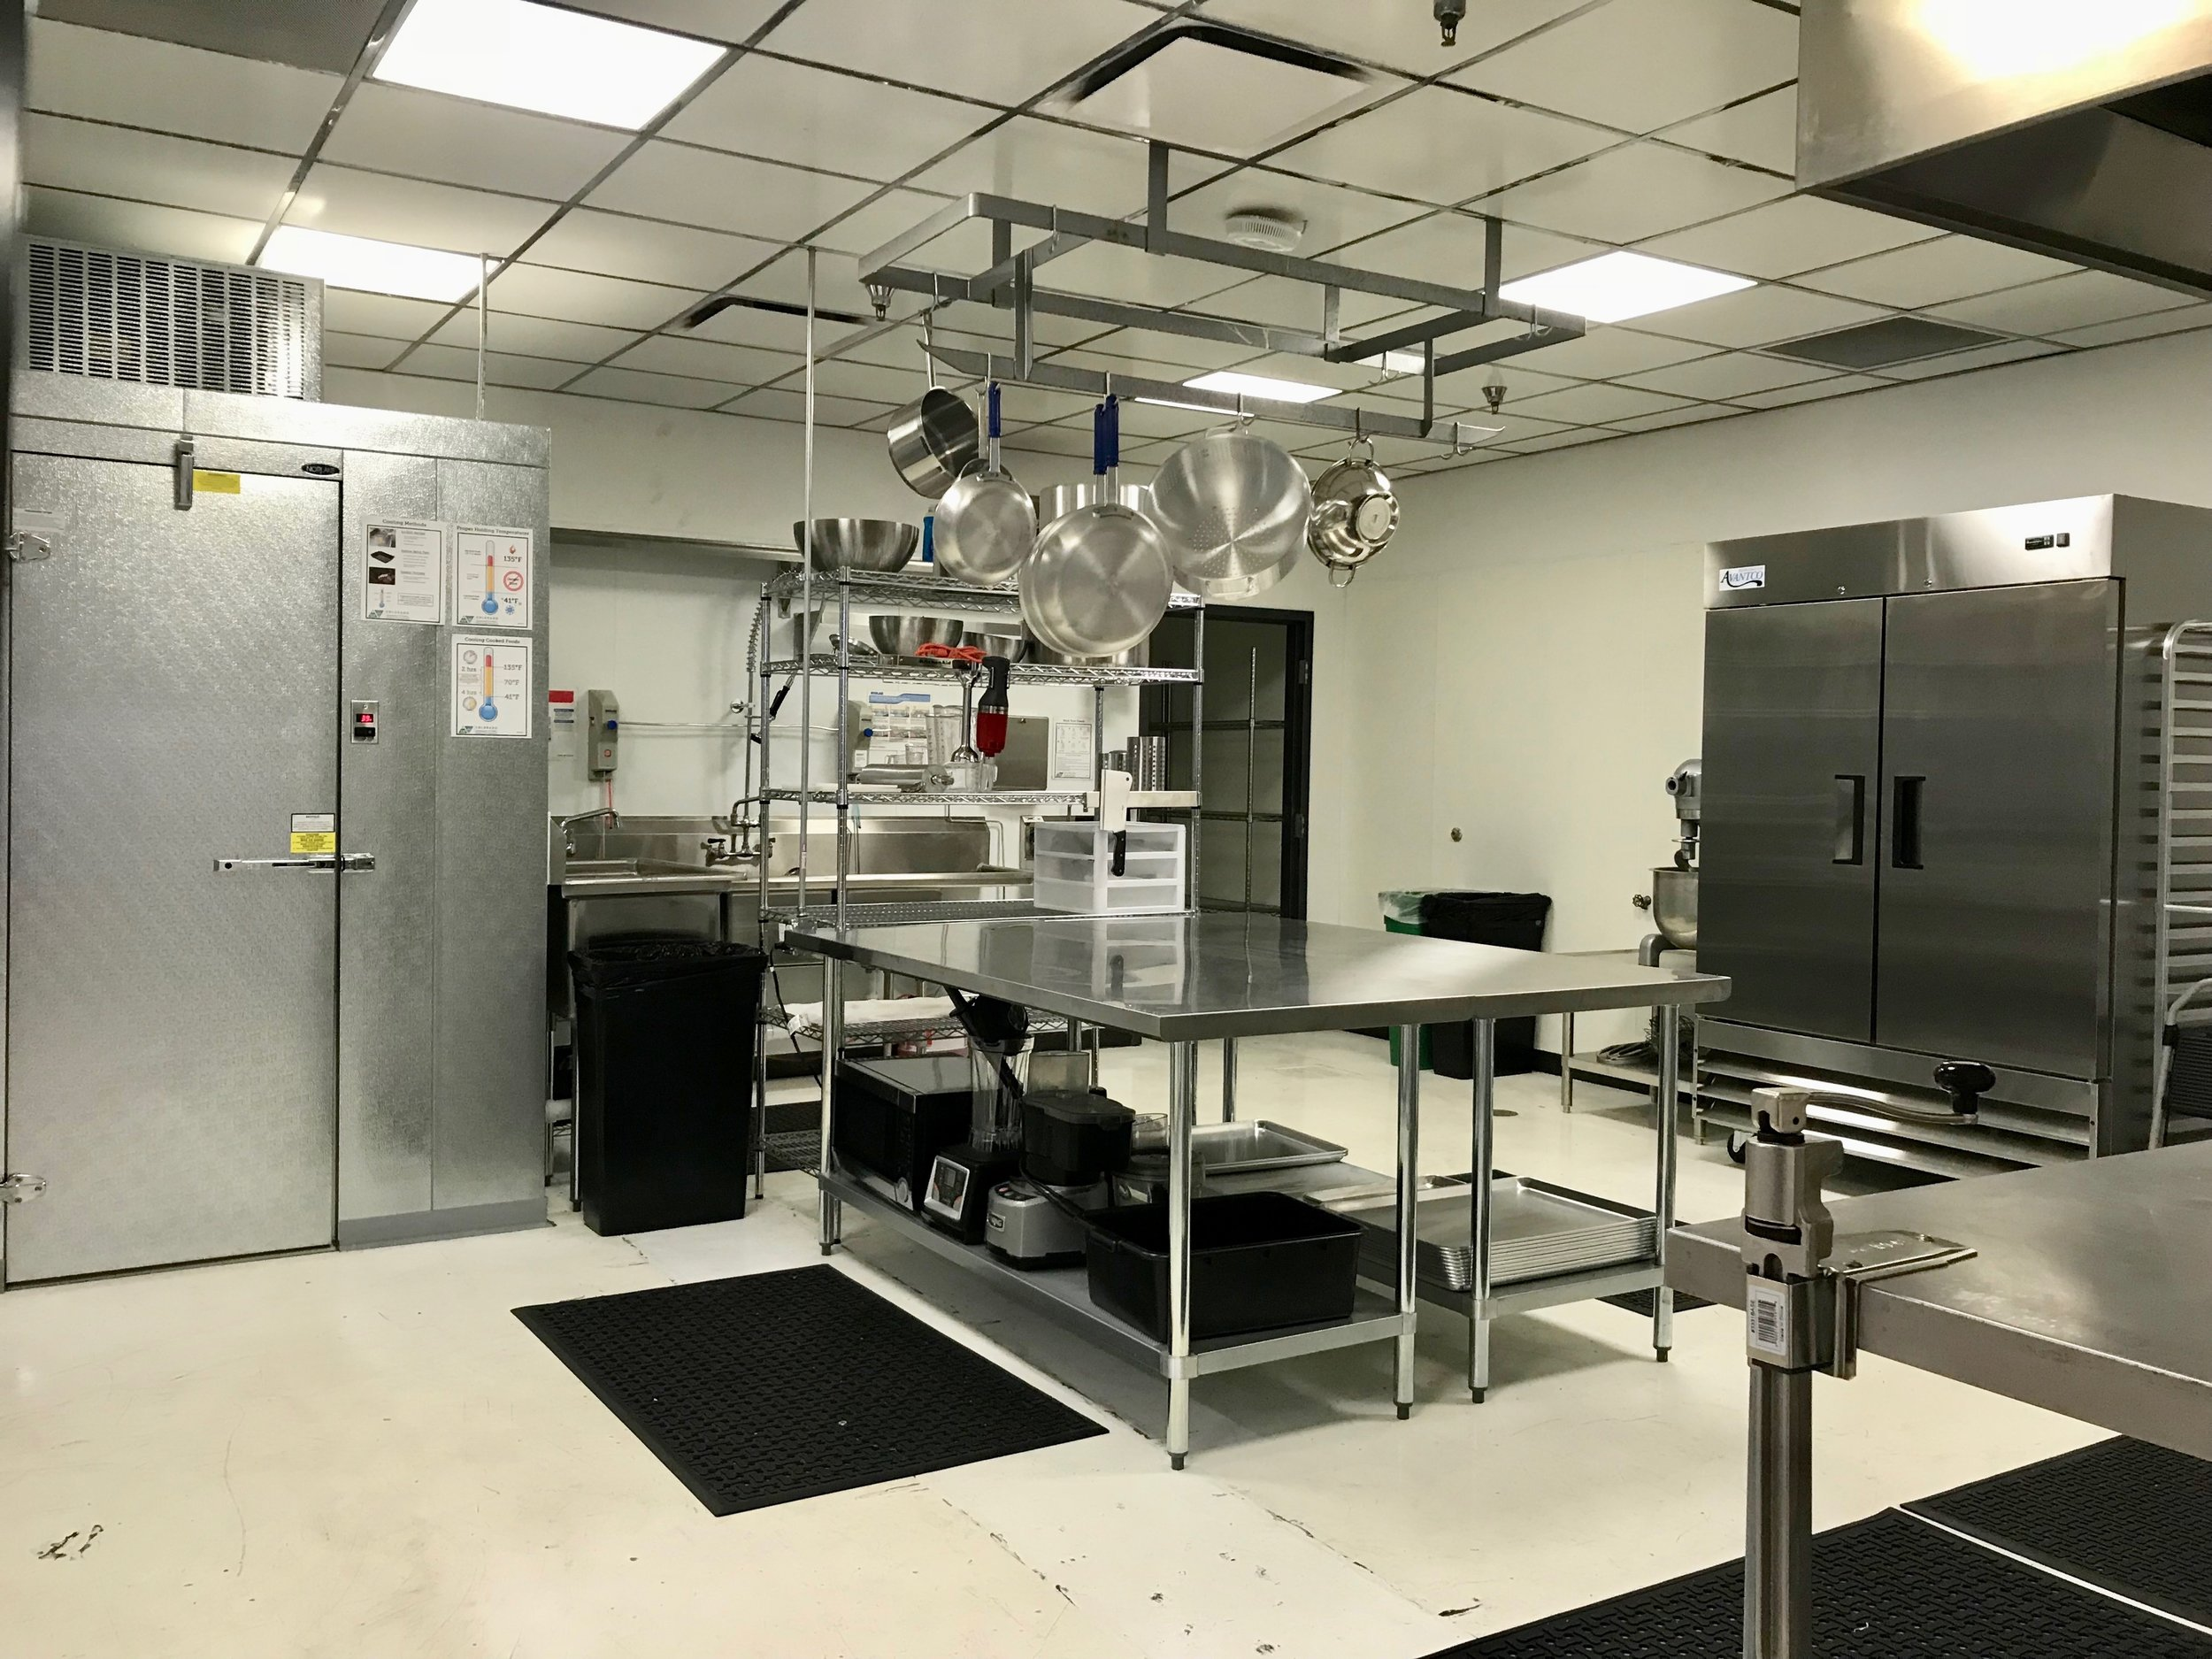 KITCHEN - NOT ONLY IS IT A BRAND NEW, FULLY-EQUIPPED COMMISSARY KITCHEN, MEMBERS CAN ALSO TEACH COOKING DEMOS, UPDATE THEIR WEBSTORE ON THE INTERNET OR SCHEDULE A MEETING IN A CONFERENCE ROOM